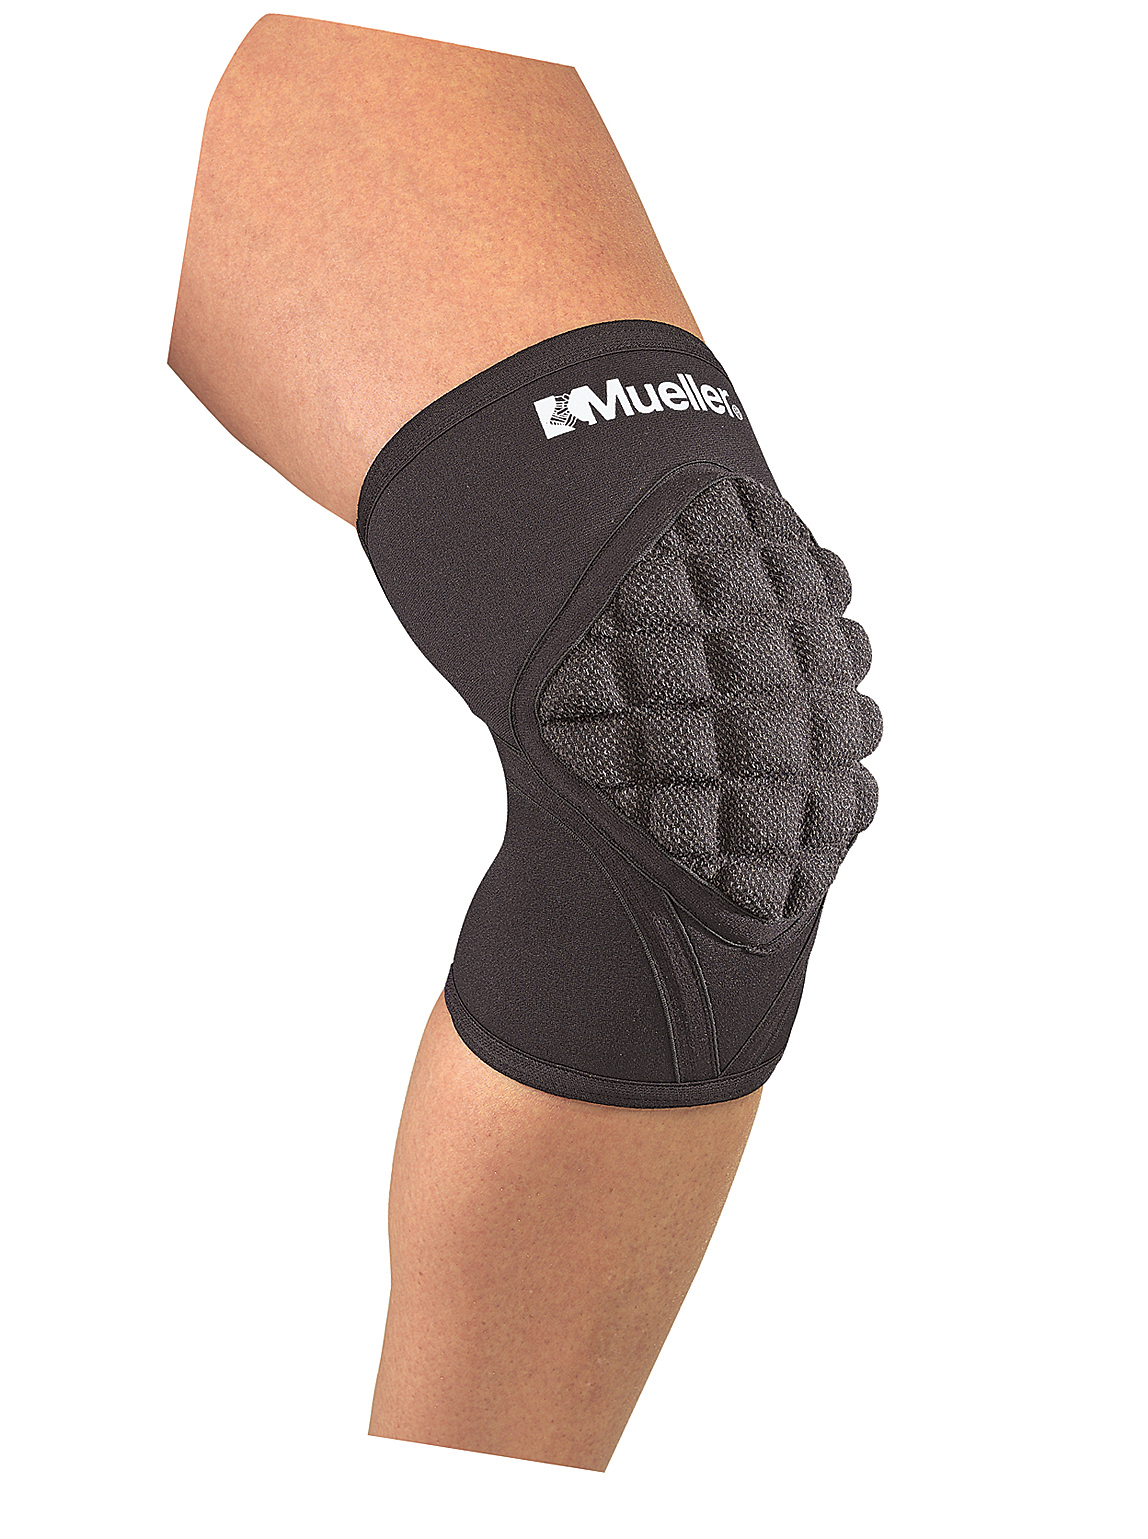 pro-level-knee-pad-w-kevlar-lg-54533-74676545332-lr.jpg